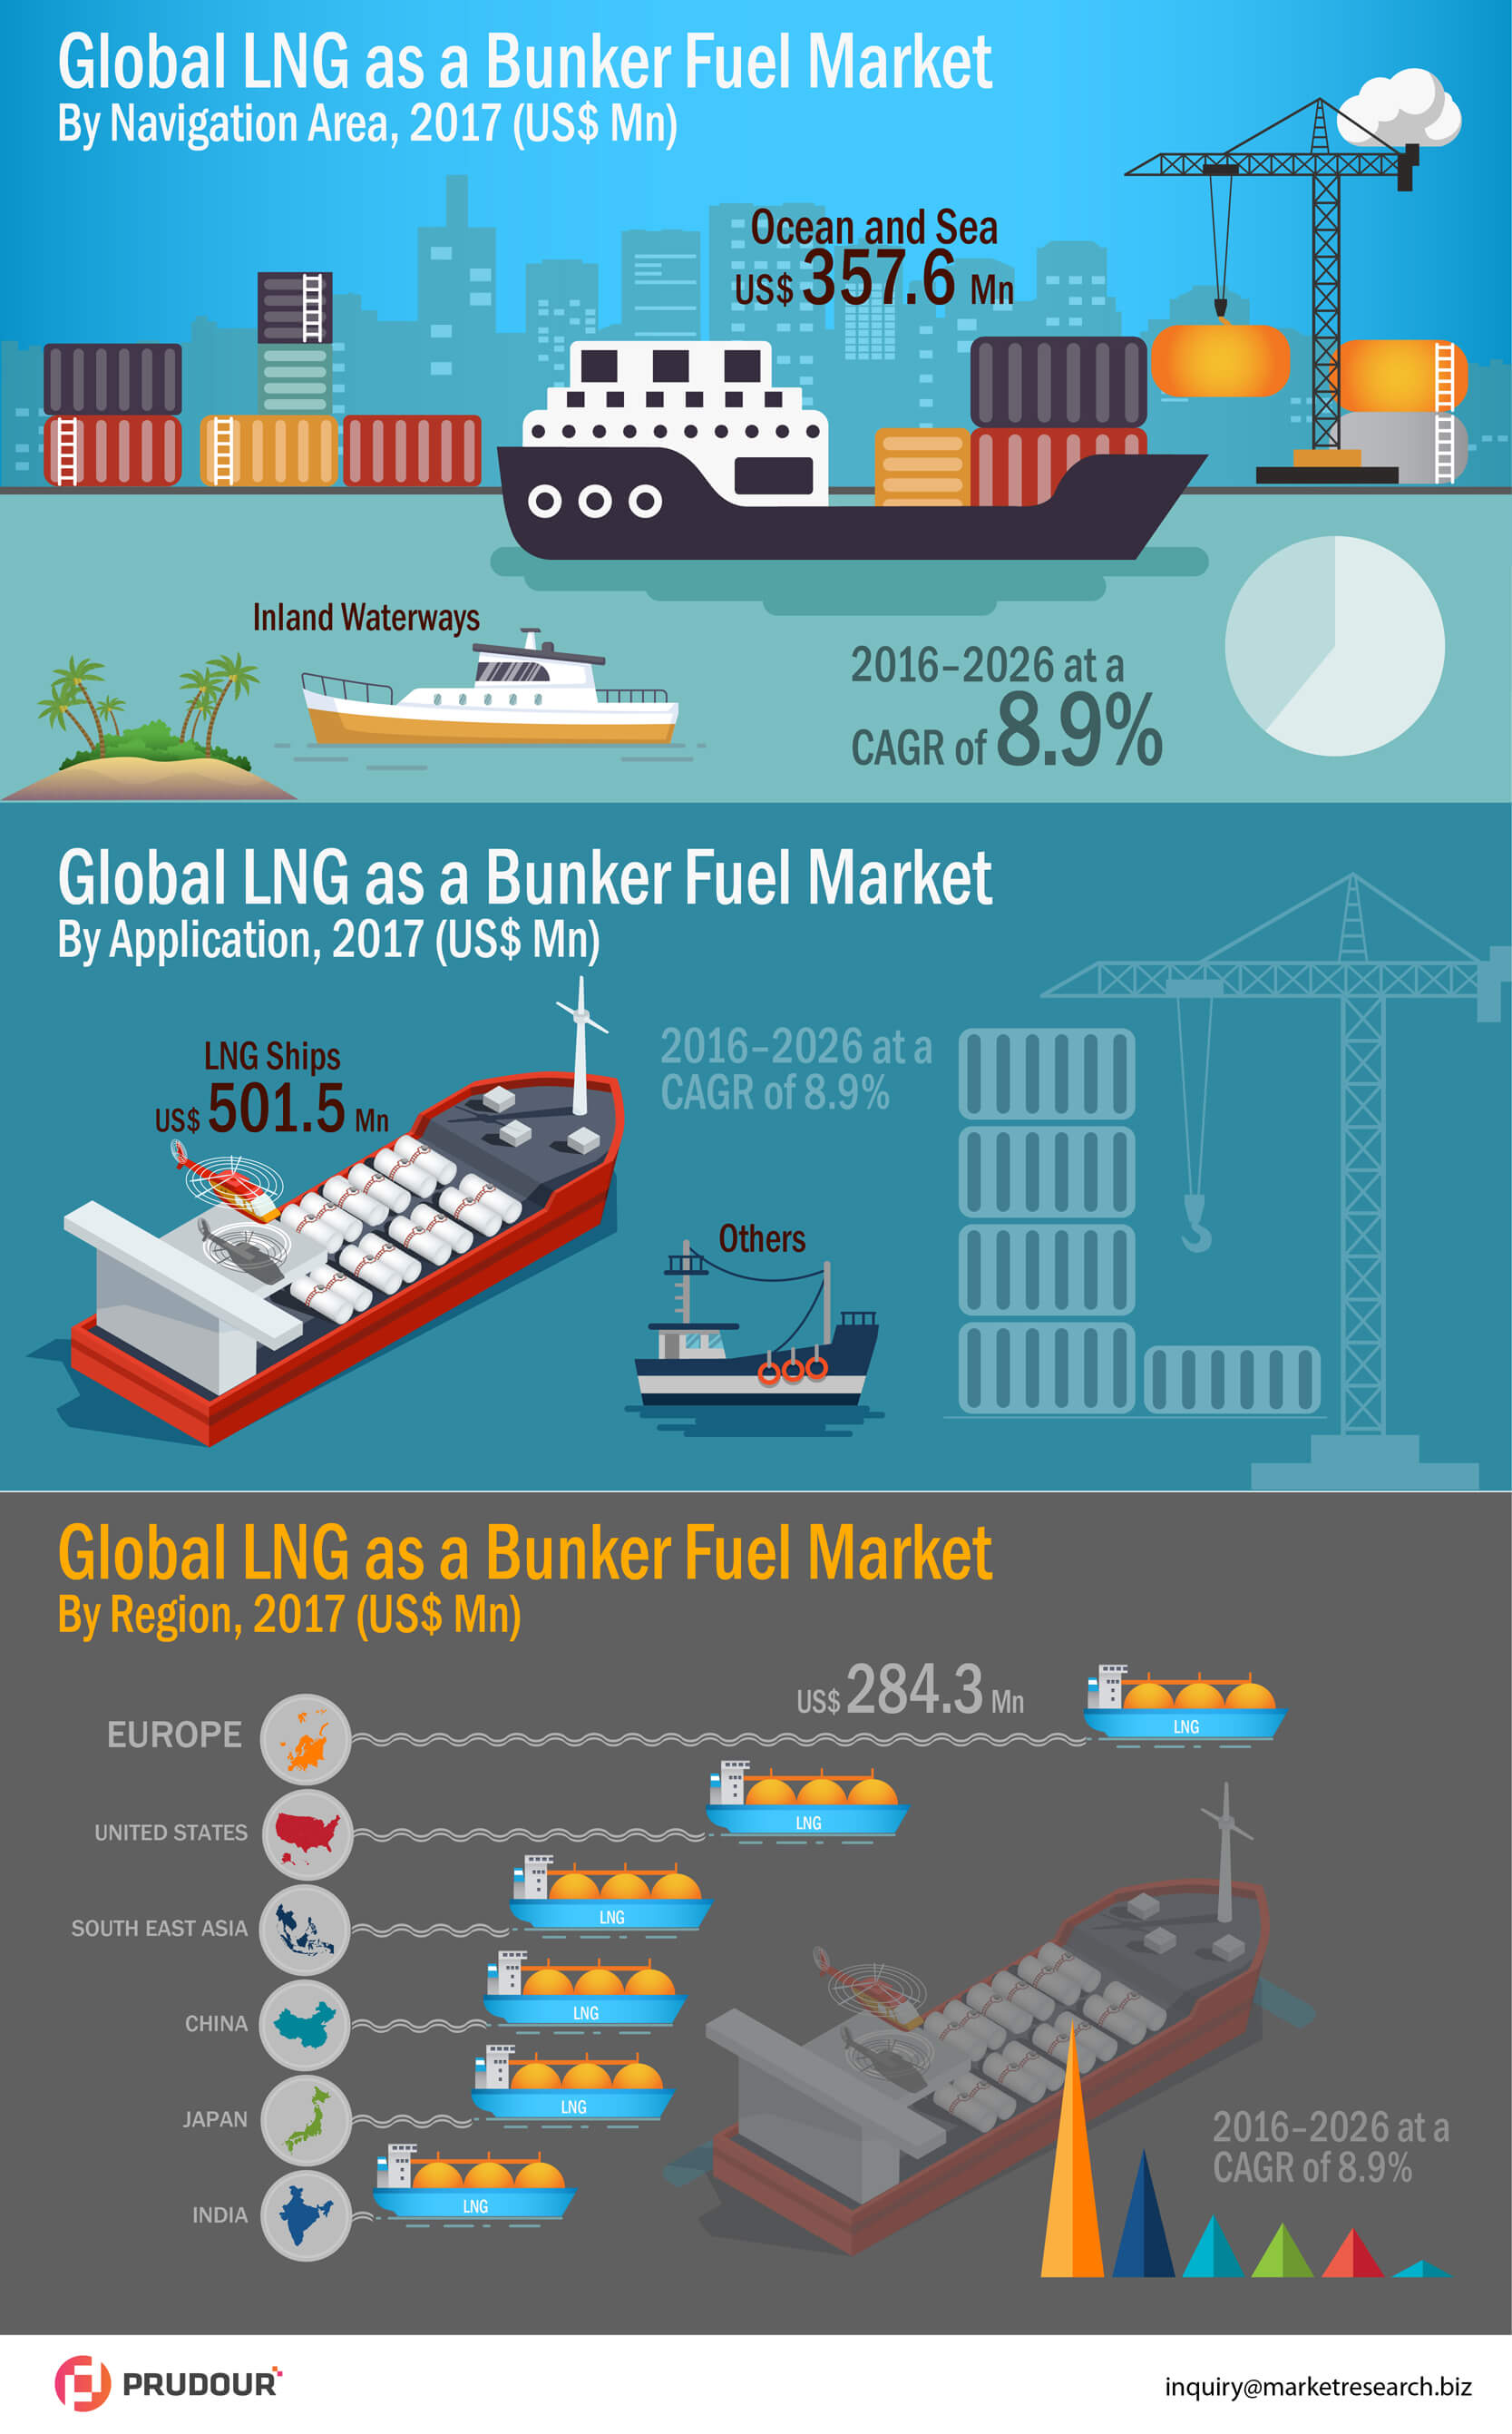 global-lng-as-a-bunker-fuel-market-infographic